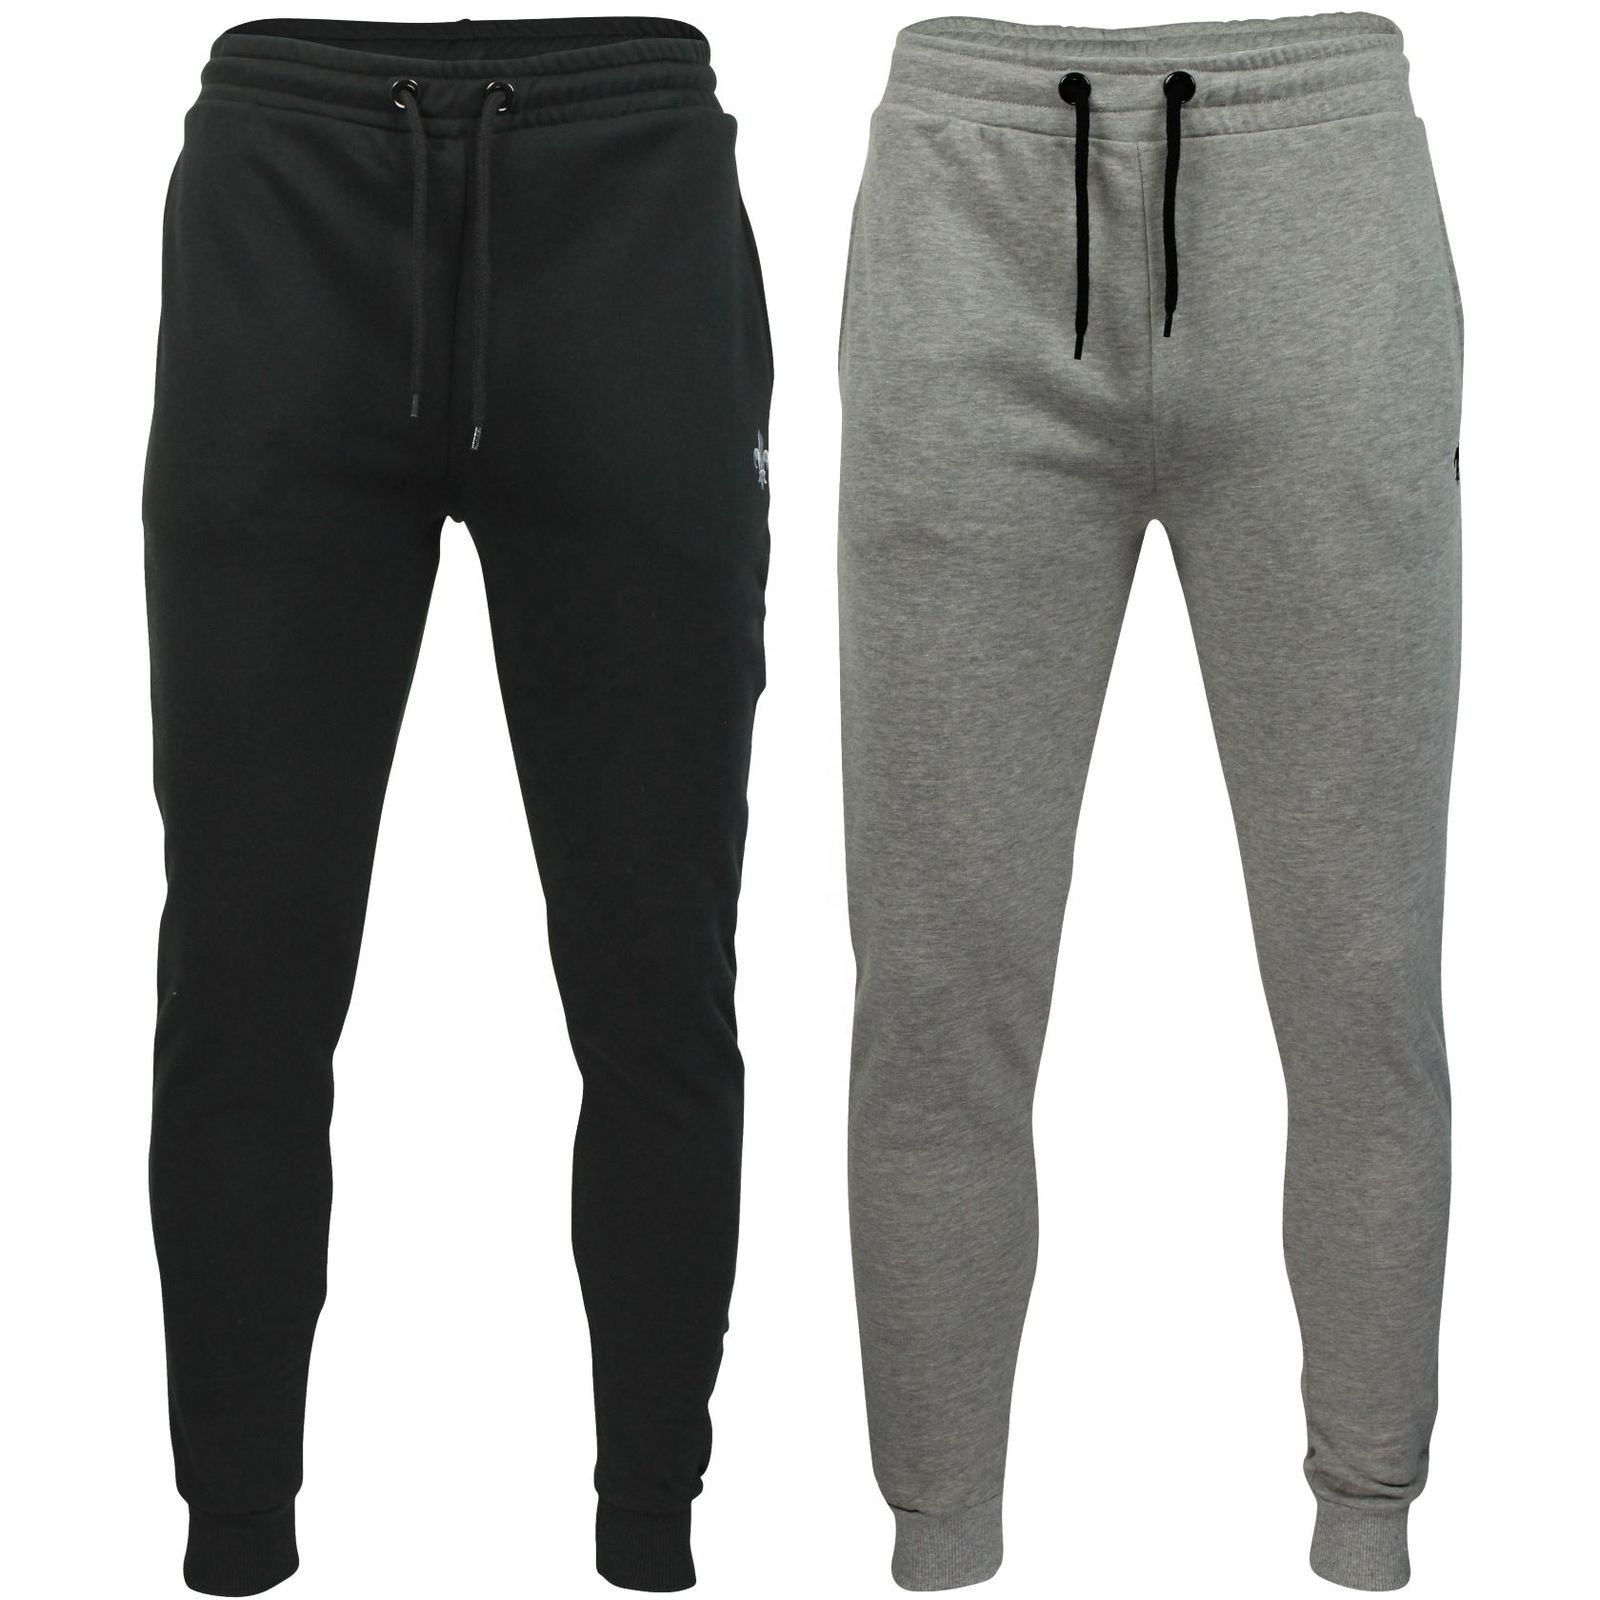 Best seller wholesales High quality brand custom made pants casual sports gym trousers men